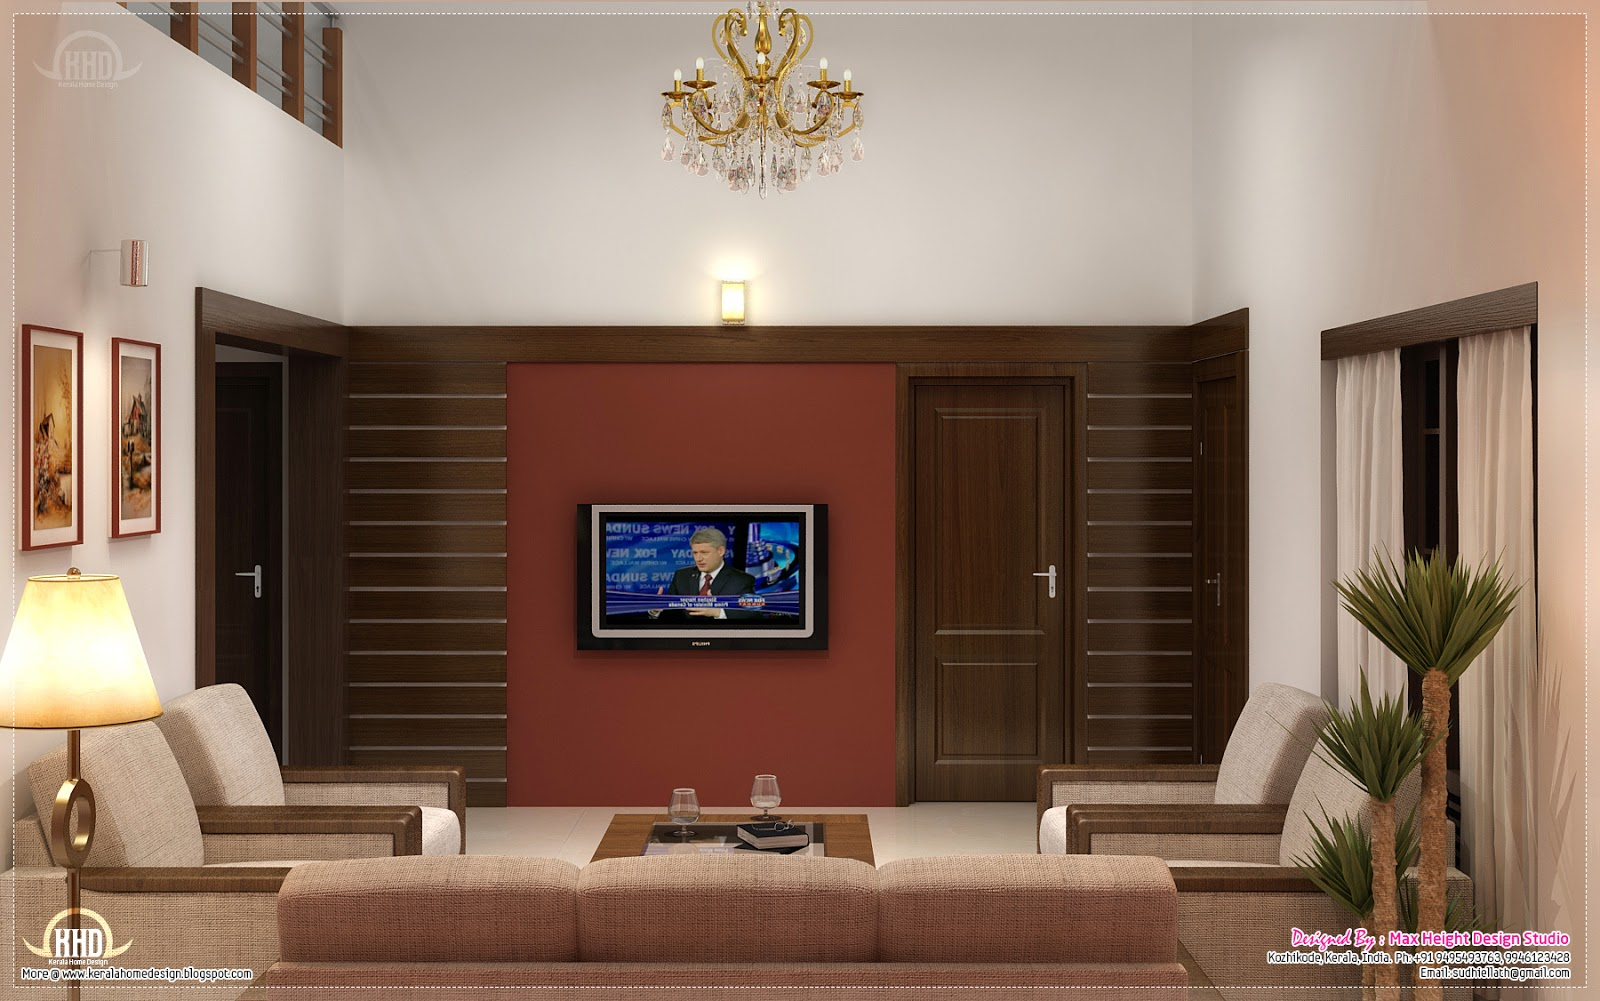 Home interior design ideas kerala home design and floor - Interior living room design ideas ...